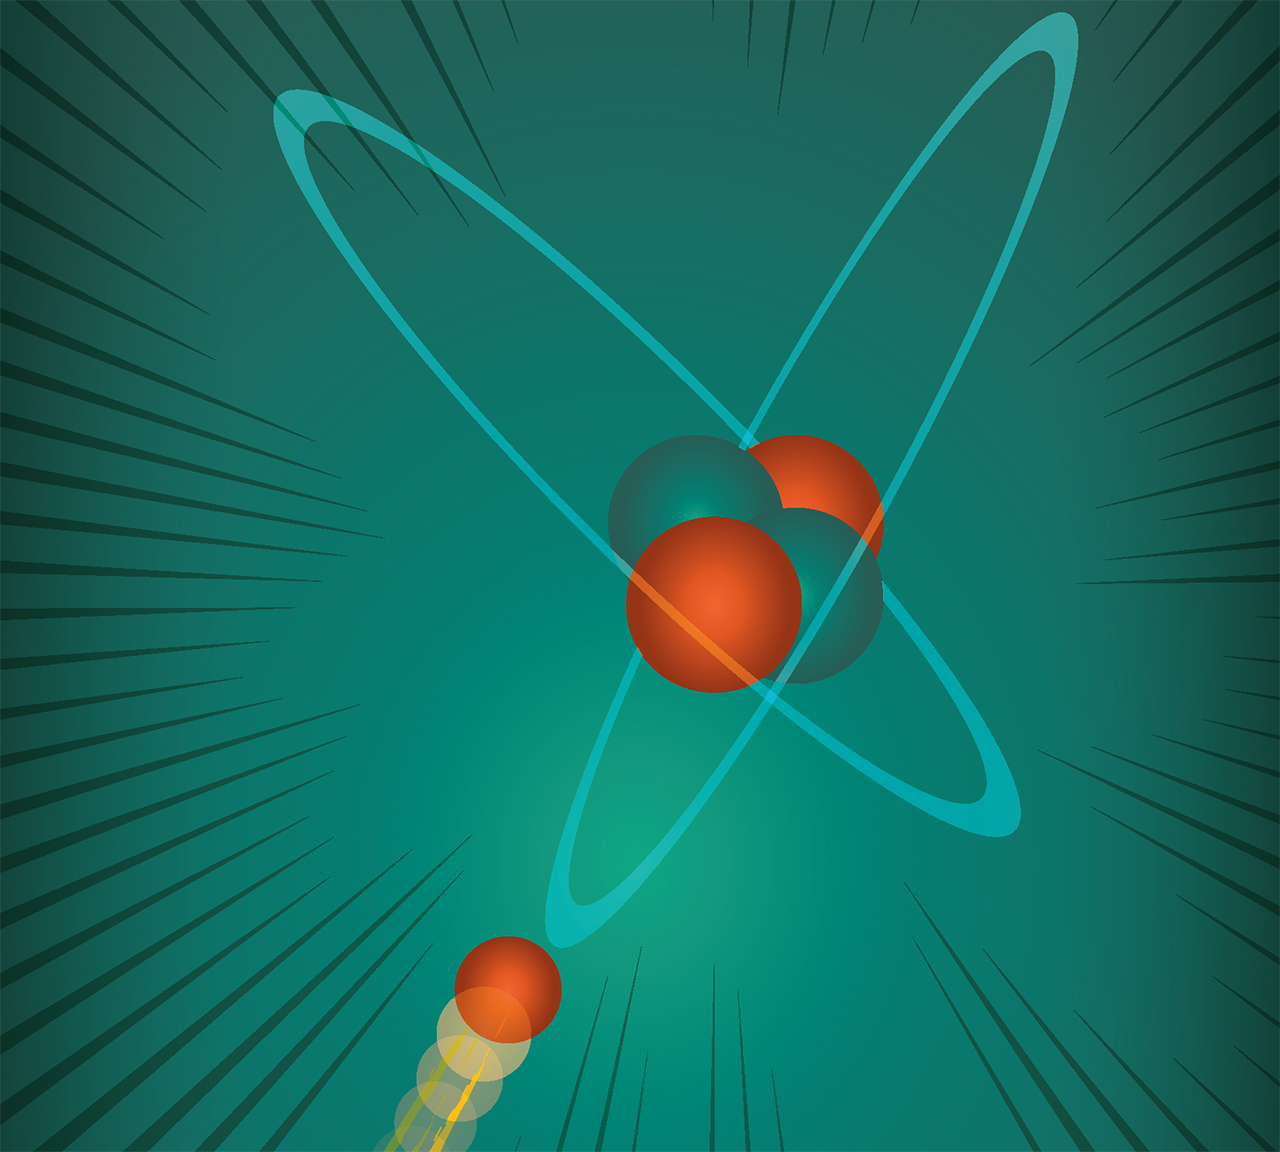 Atom illustration by Sean Thornton